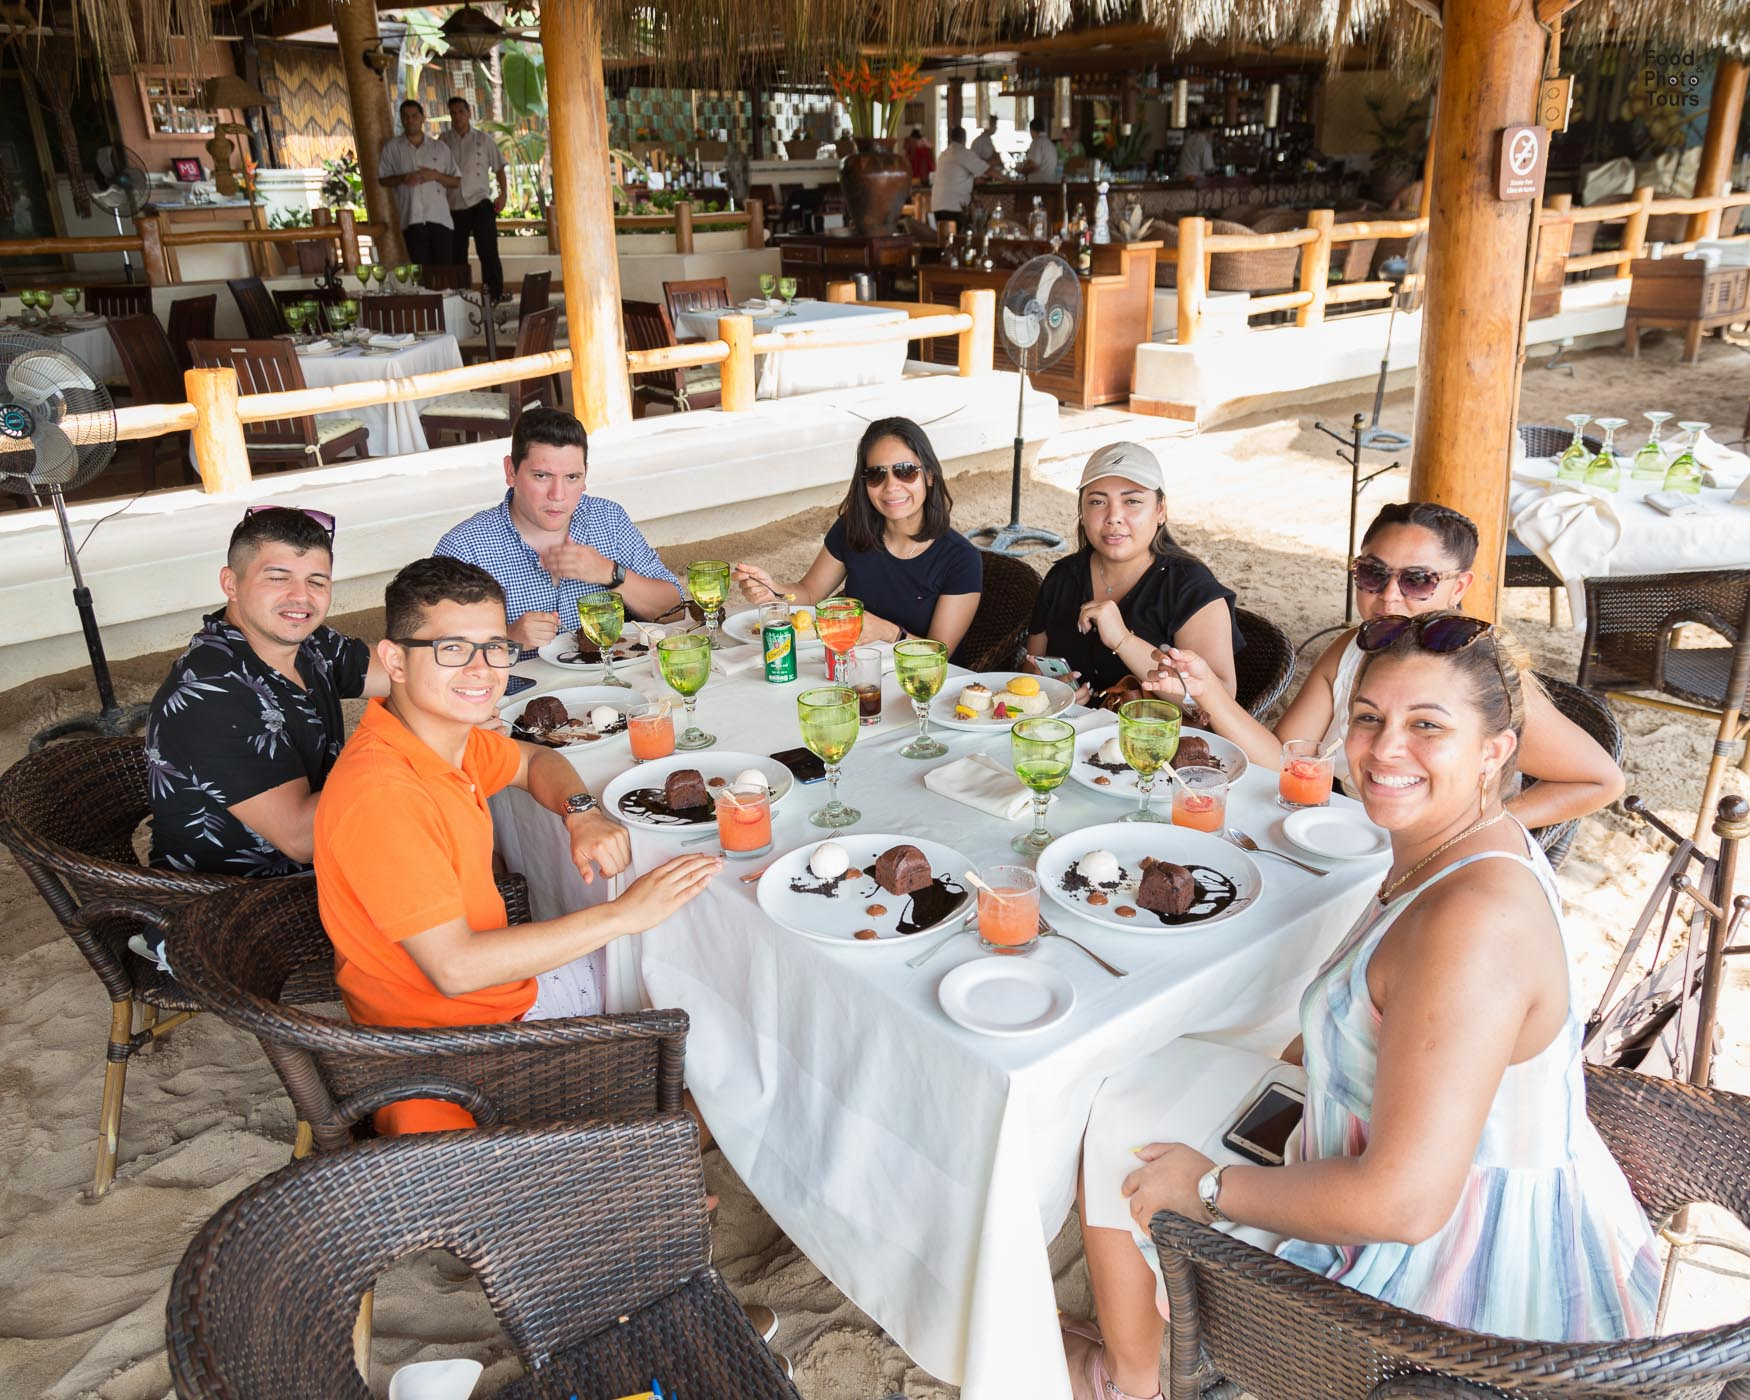 Puerto Vallarta Food Tours by Vallarta Food and Photo Tours. Custom food tours, city tours, tequila tastings, photo shoots, and fine dinning.